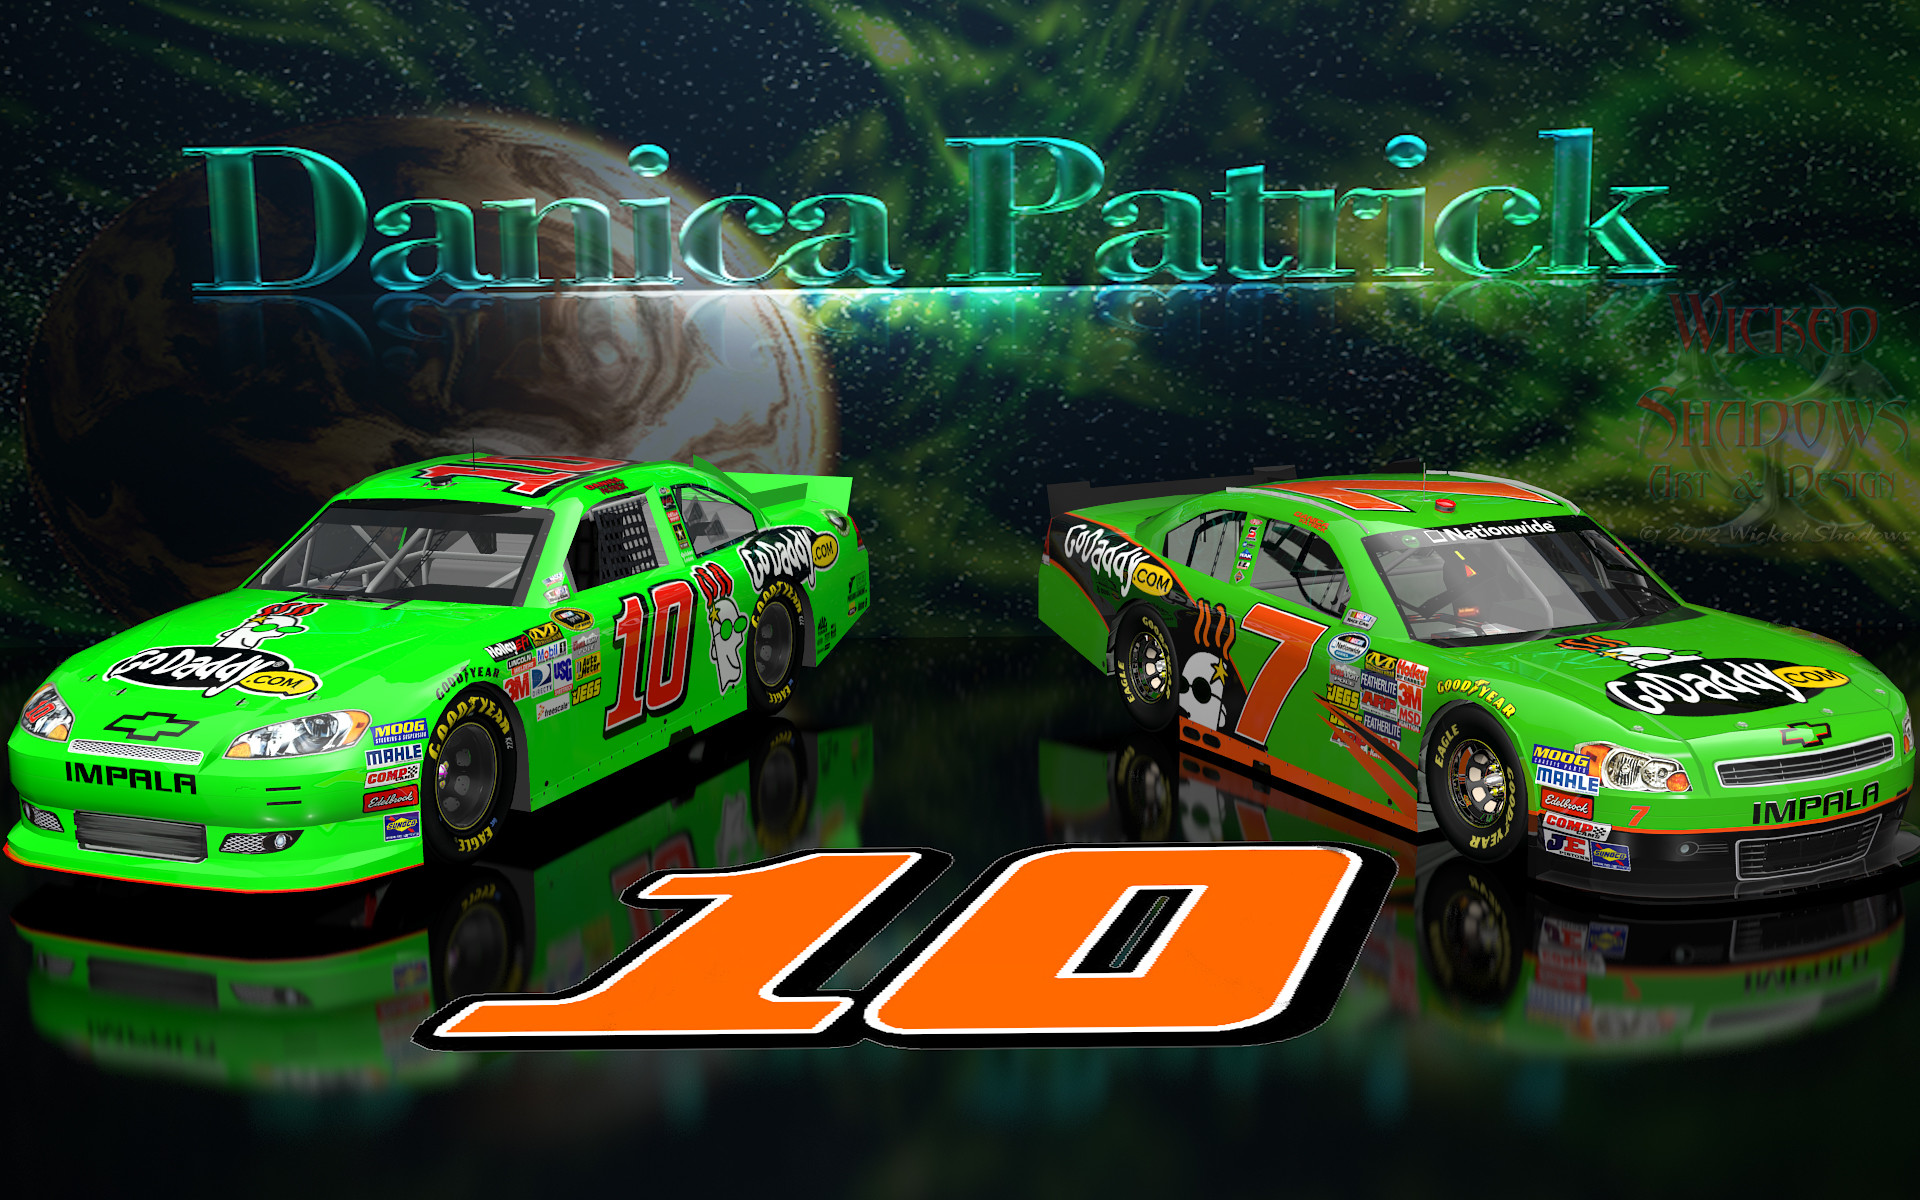 Wallpapers By Wicked Shadows: Danica Patrick NNS And Cup Go Daddy Cars .